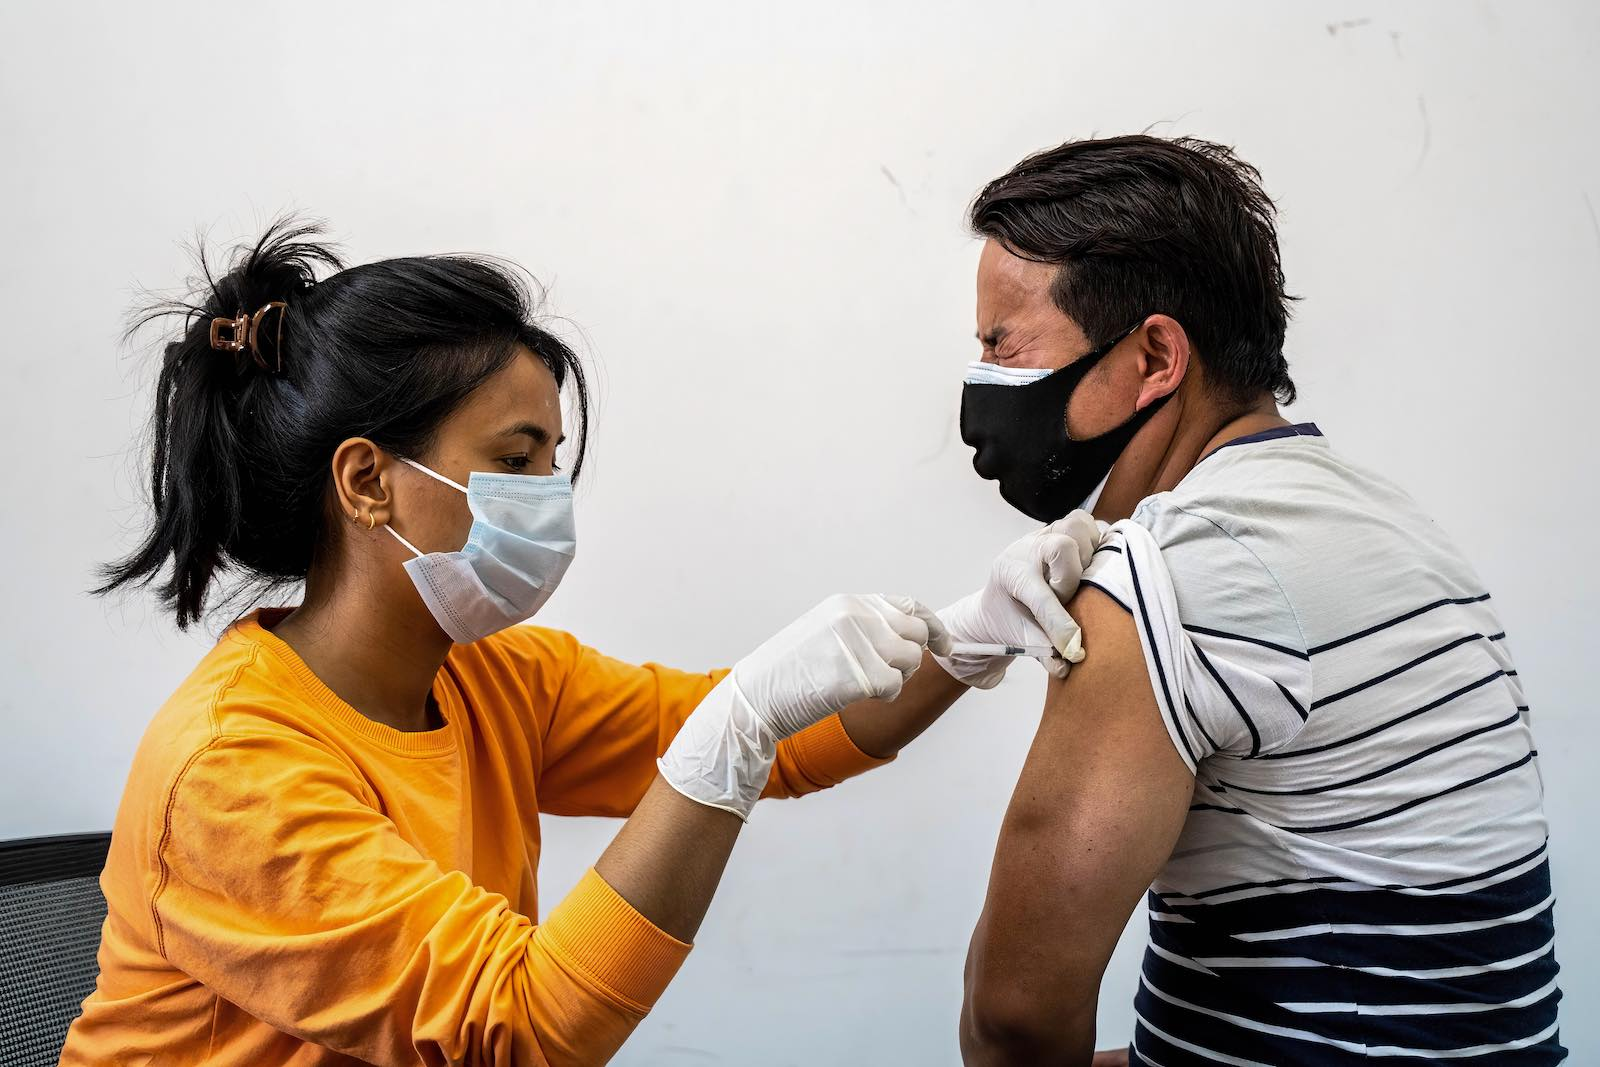 A Nepali man taking his first jab of Sinopharm vaccine at a health facility in Kathmandu, 26 April (Dipendra Rokka/SOPA Images/LightRocket via Getty Images)